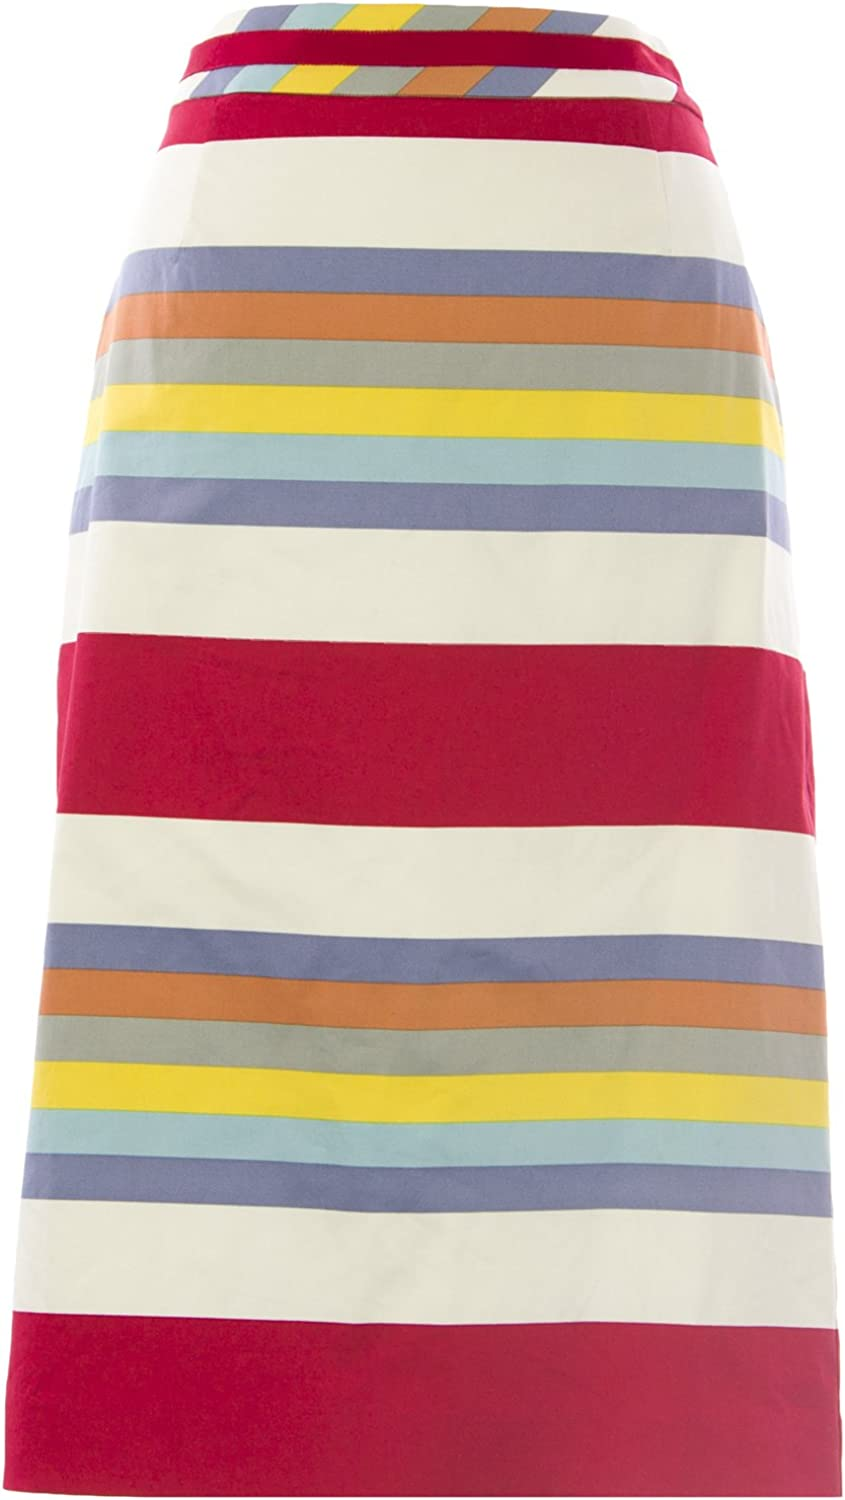 BODEN Women's Striped Modern Pencil Skirt Red Multicolord